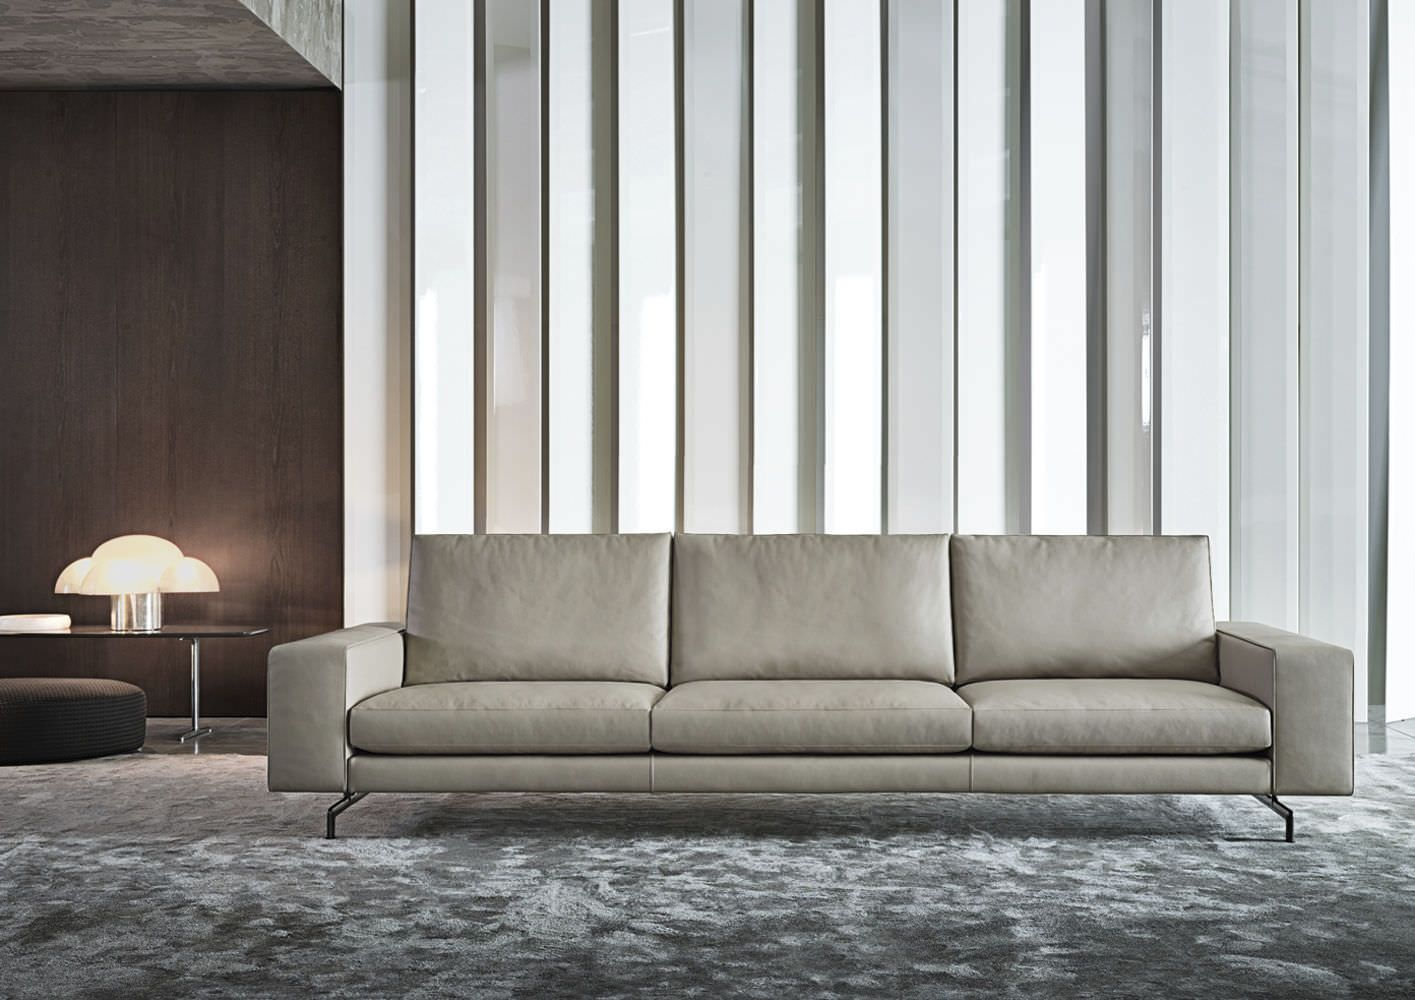 contemporary sofa by rodolfo dordoni sherman minotti. Black Bedroom Furniture Sets. Home Design Ideas